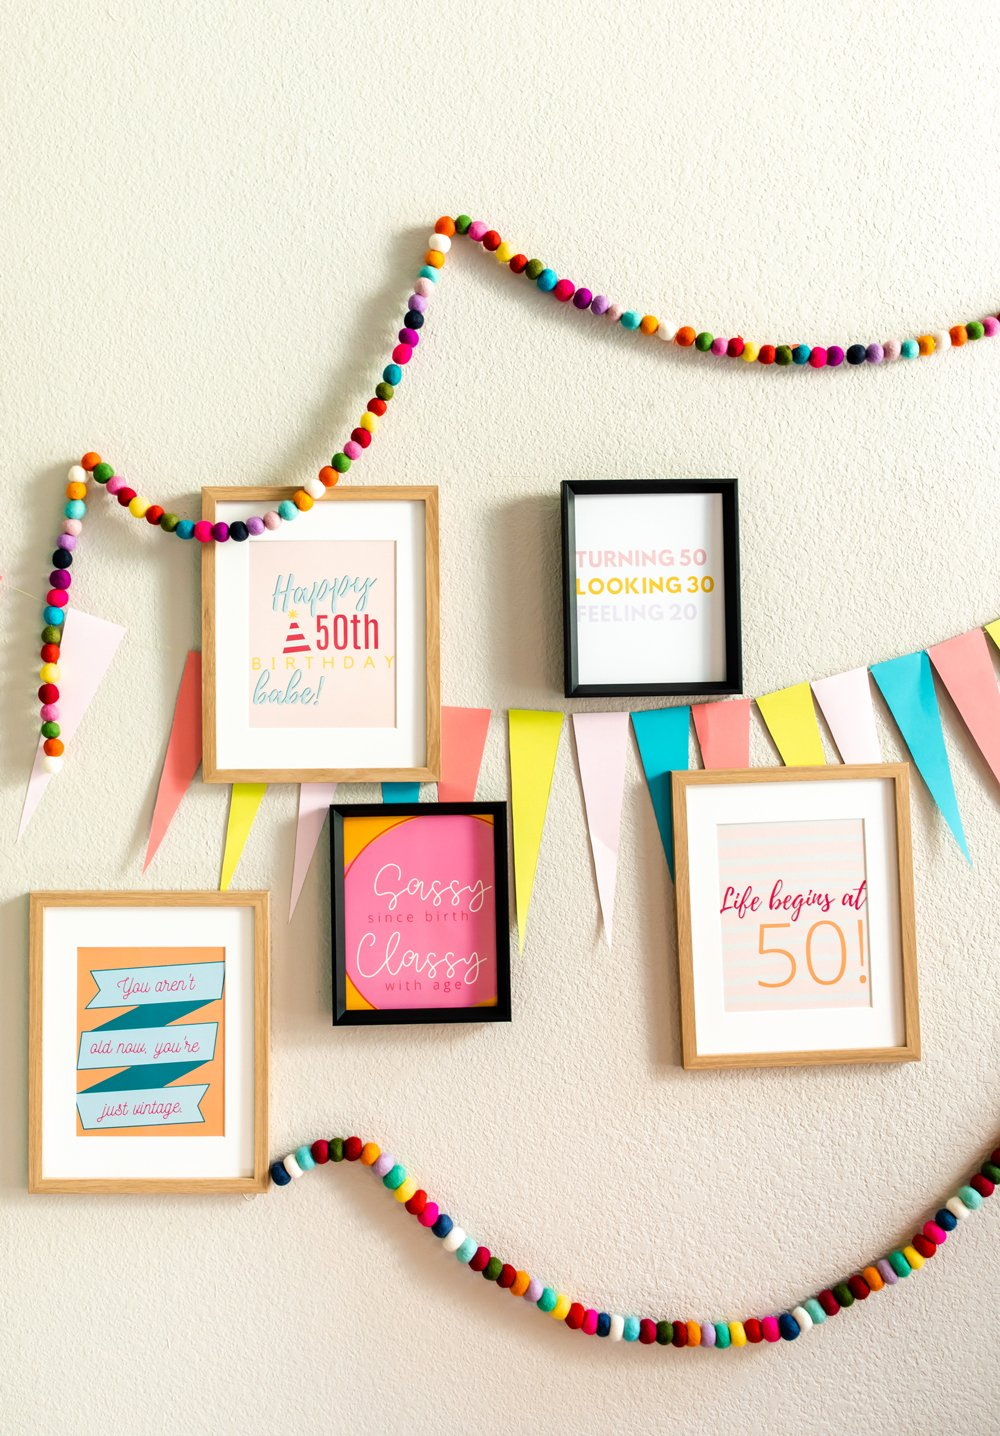 Hosting a 50th birthday party signs and quotes decor